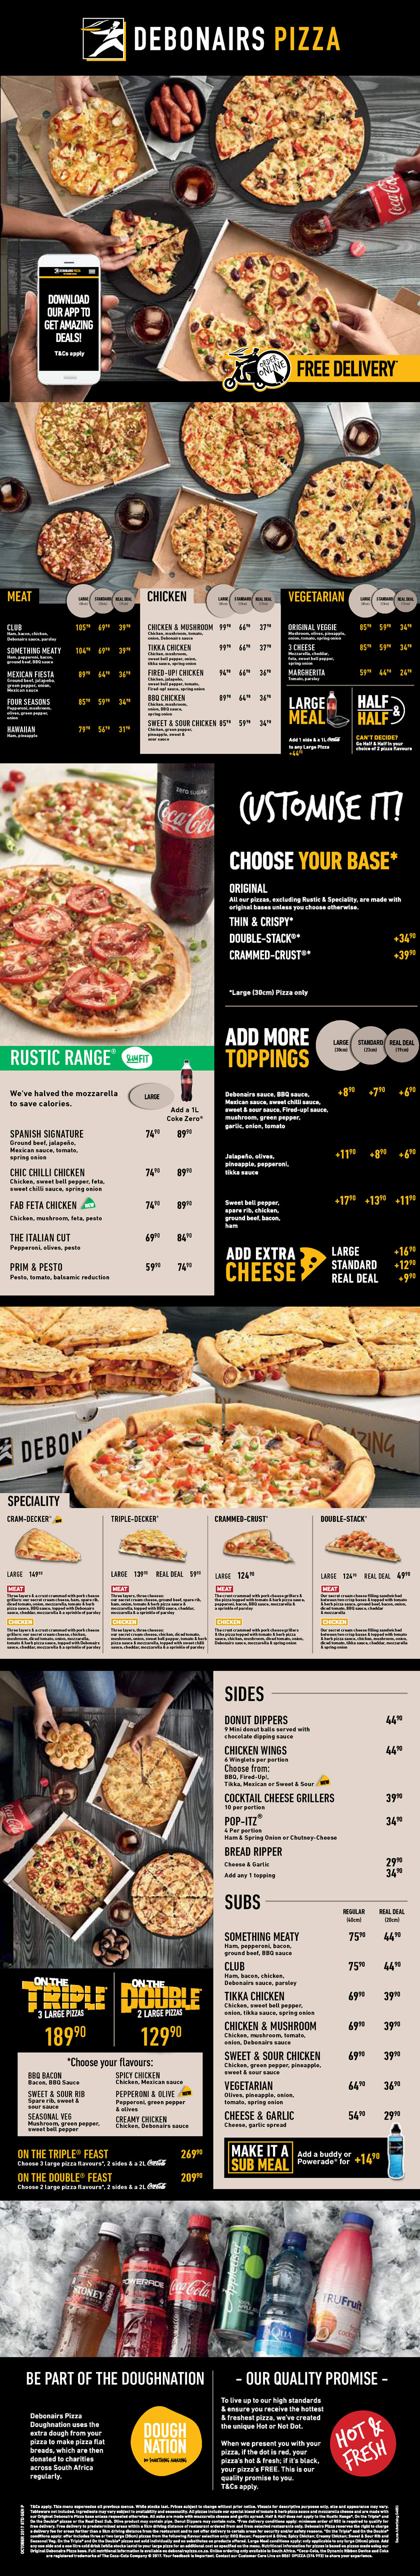 Debonairs Pizza in Plett - Menu